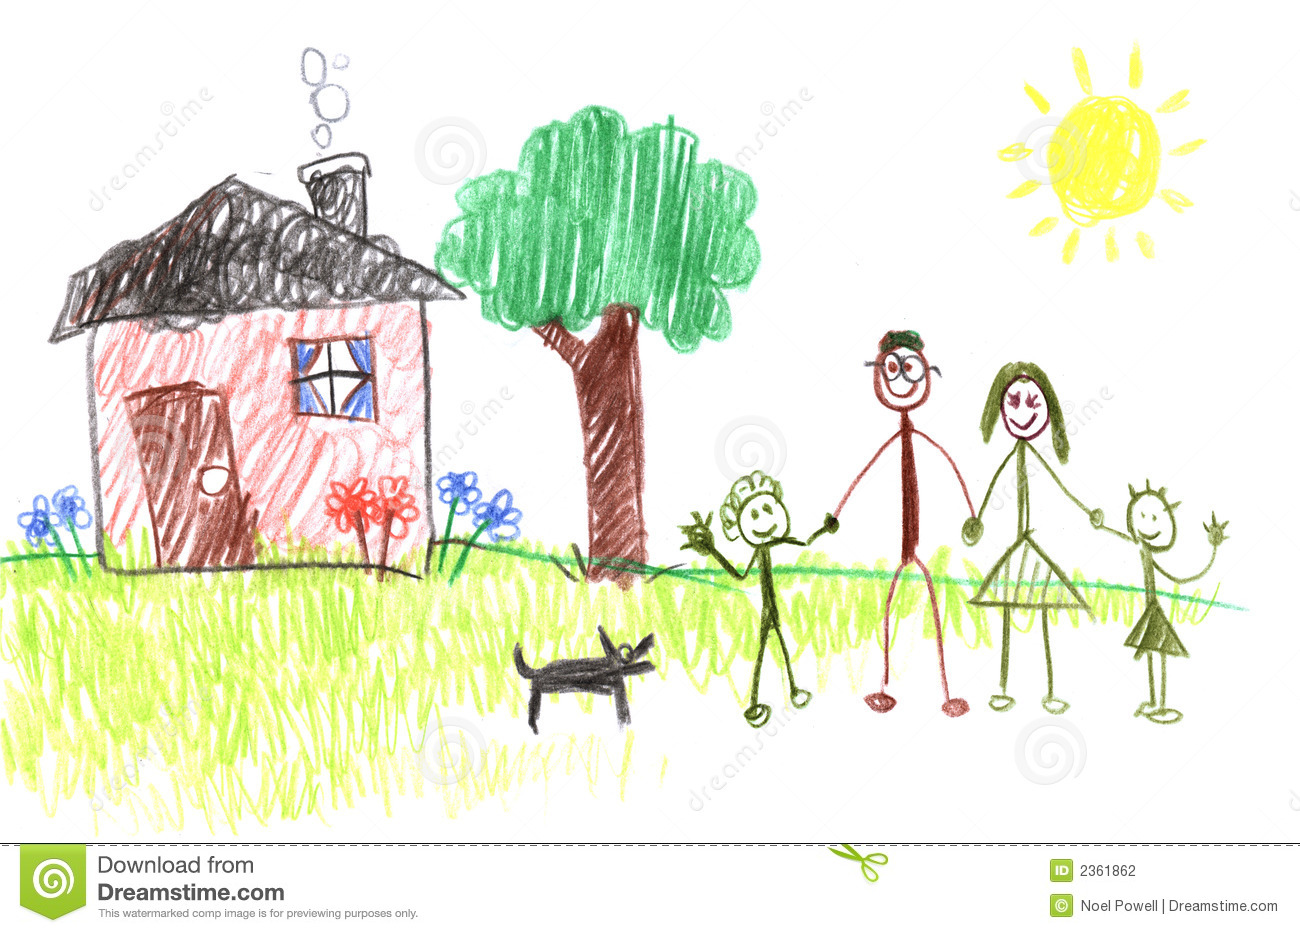 Happy family and their house through the eyes of a toddler.